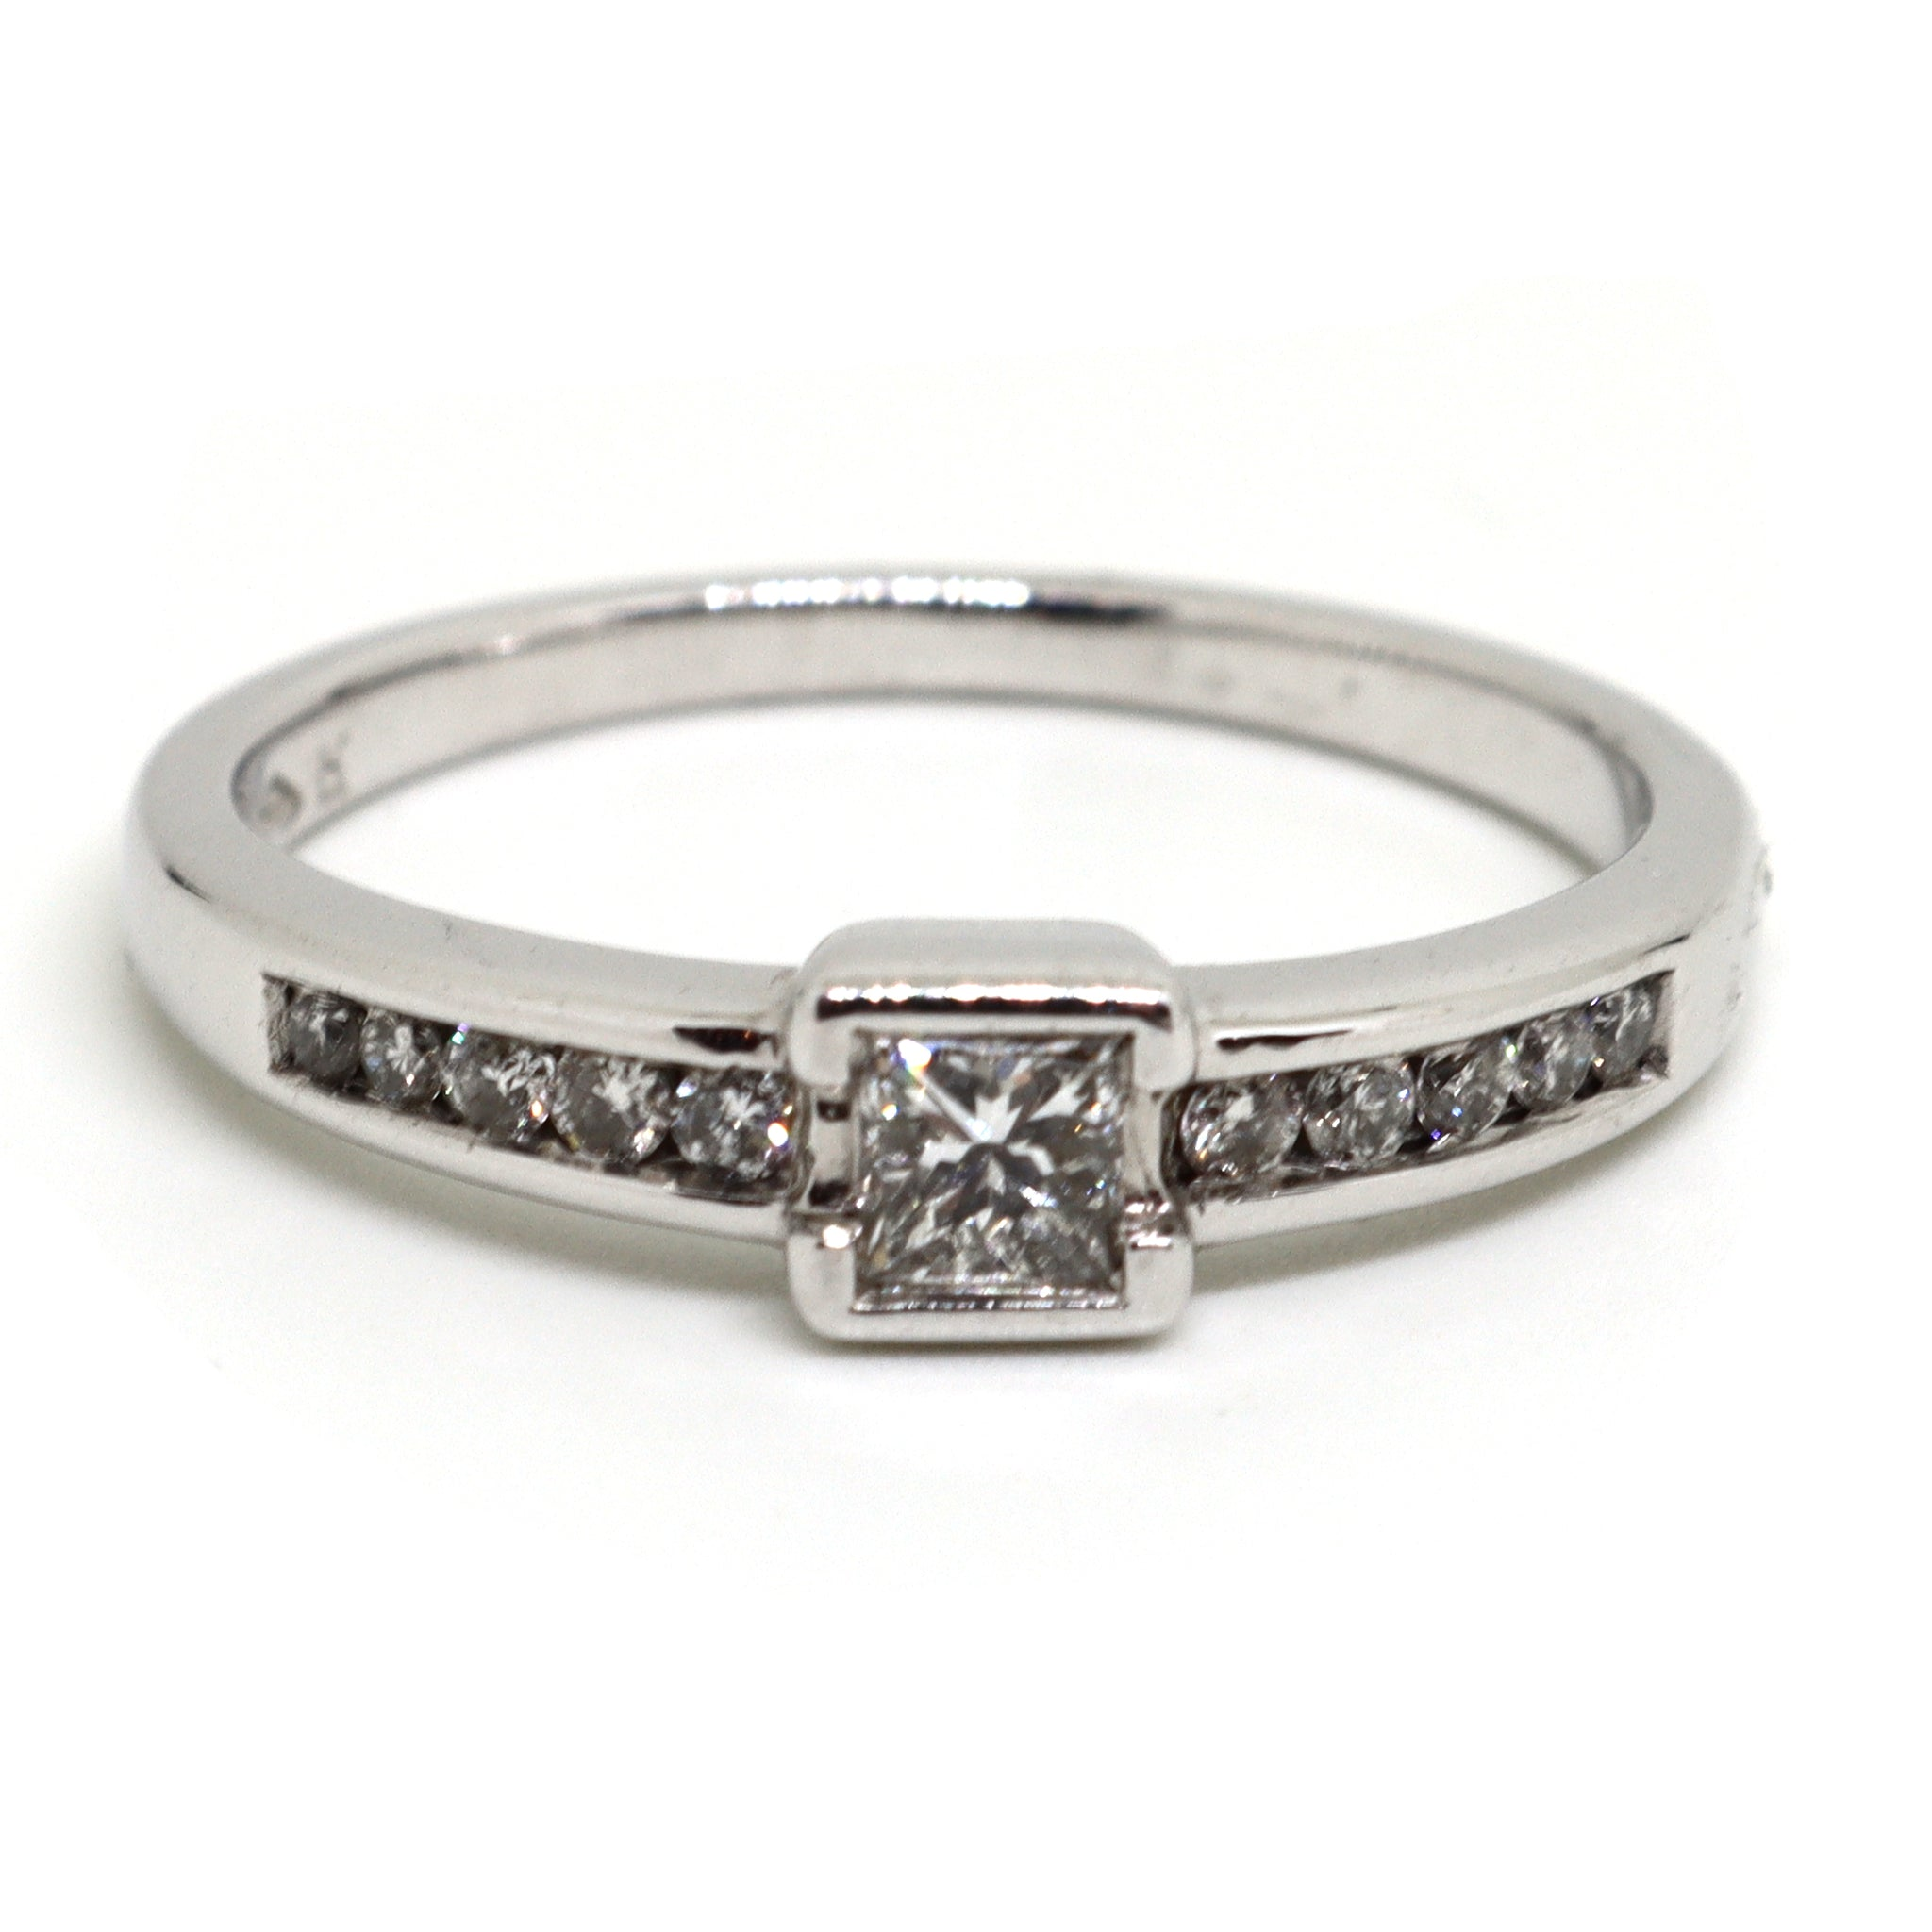 Princess cut diamond with diamond channel set shoulders